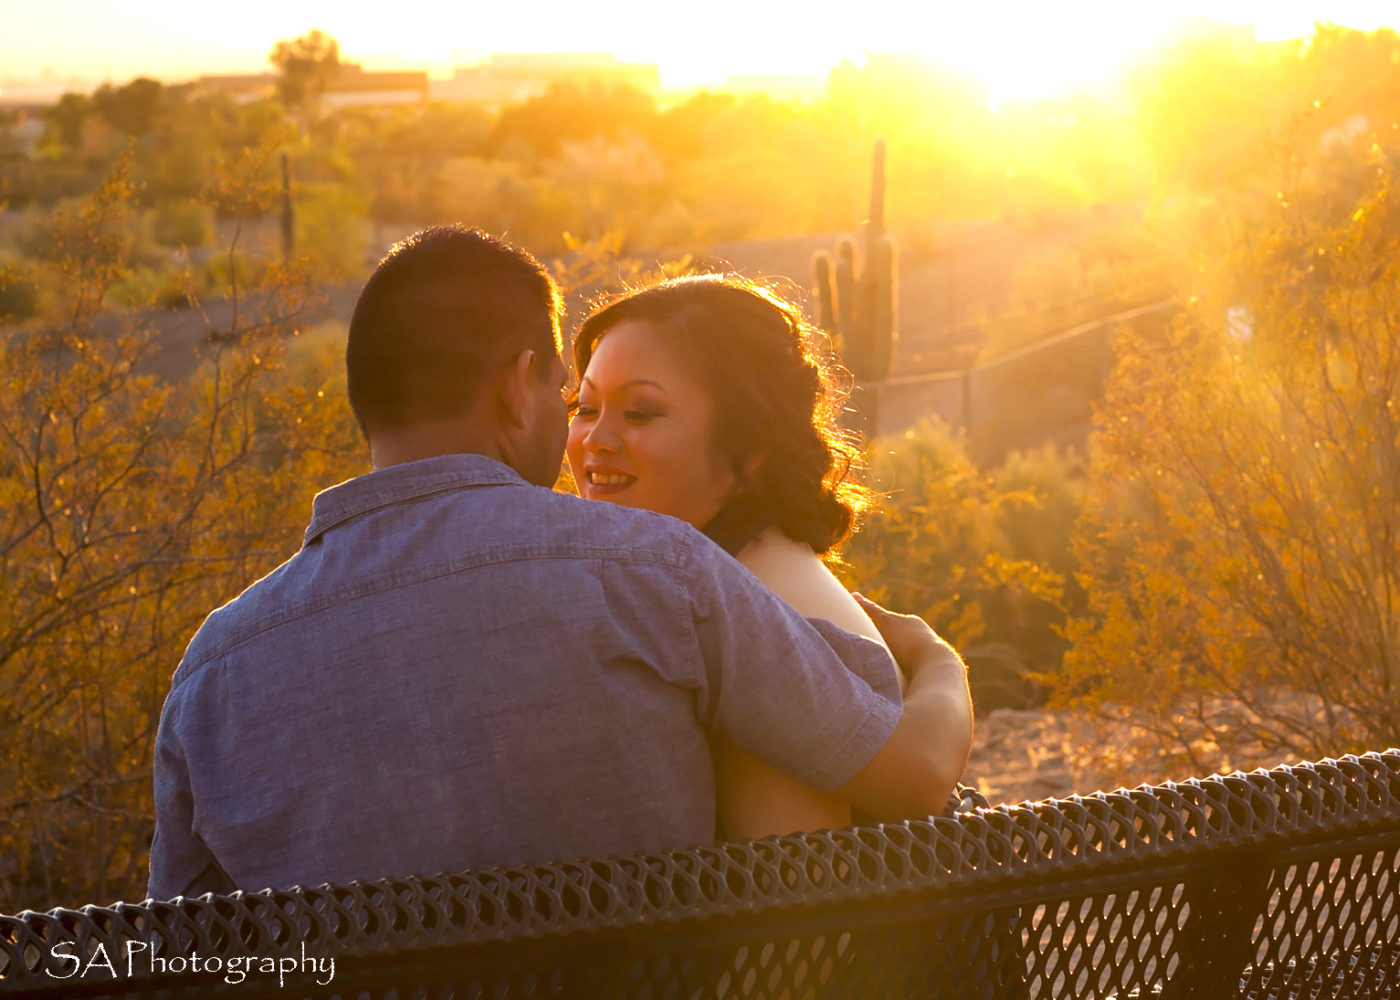 Budget Photographer: SA Photography- Professional Quality You Can Afford!